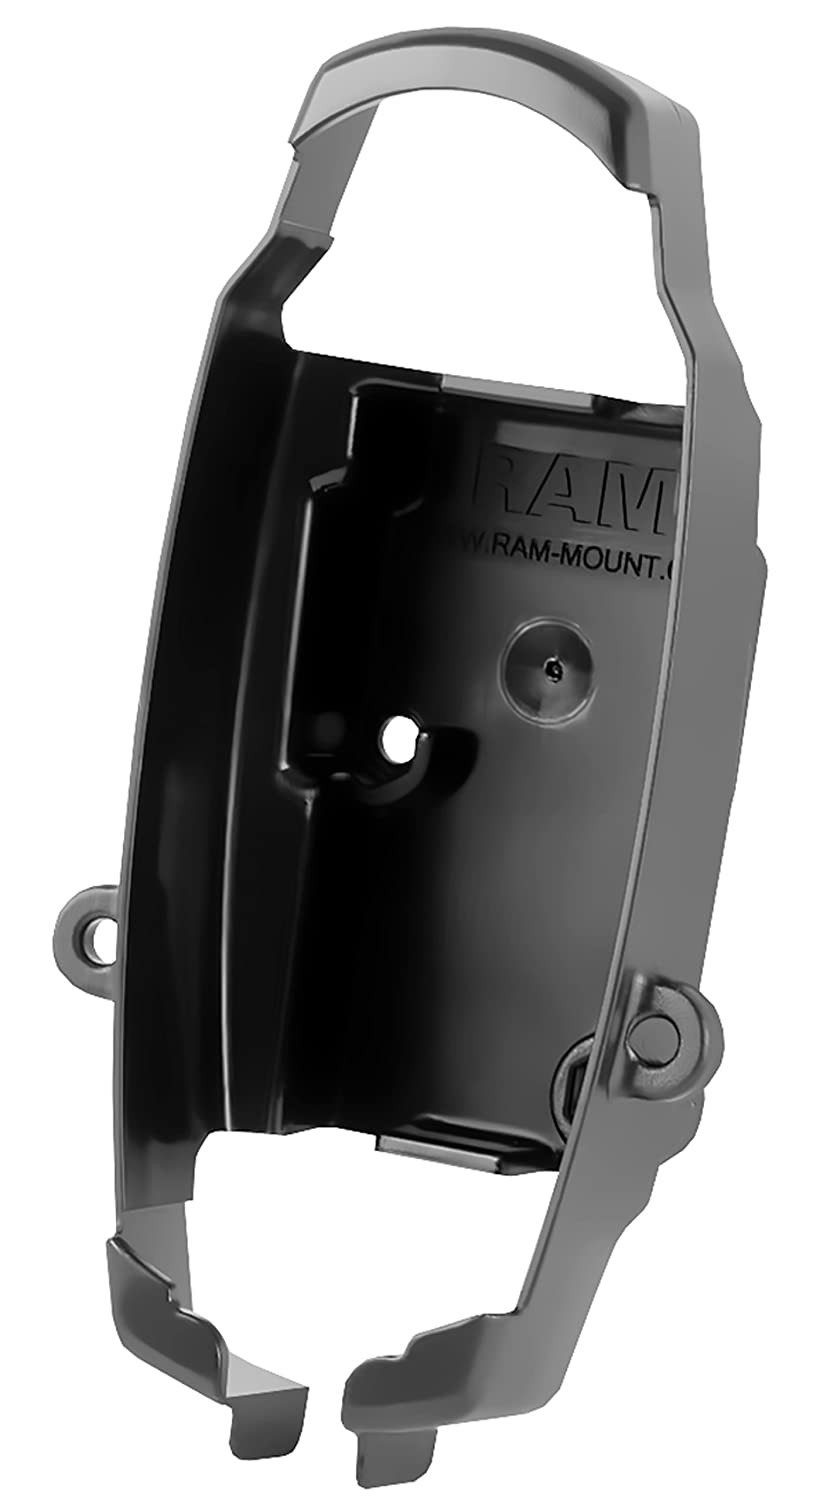 Map Color ATV Pro and Topo National Products Inc Marine RAM-HOL-MA3U Ram Mount Cradle Holder for the Magellan Sportrak Outdoor